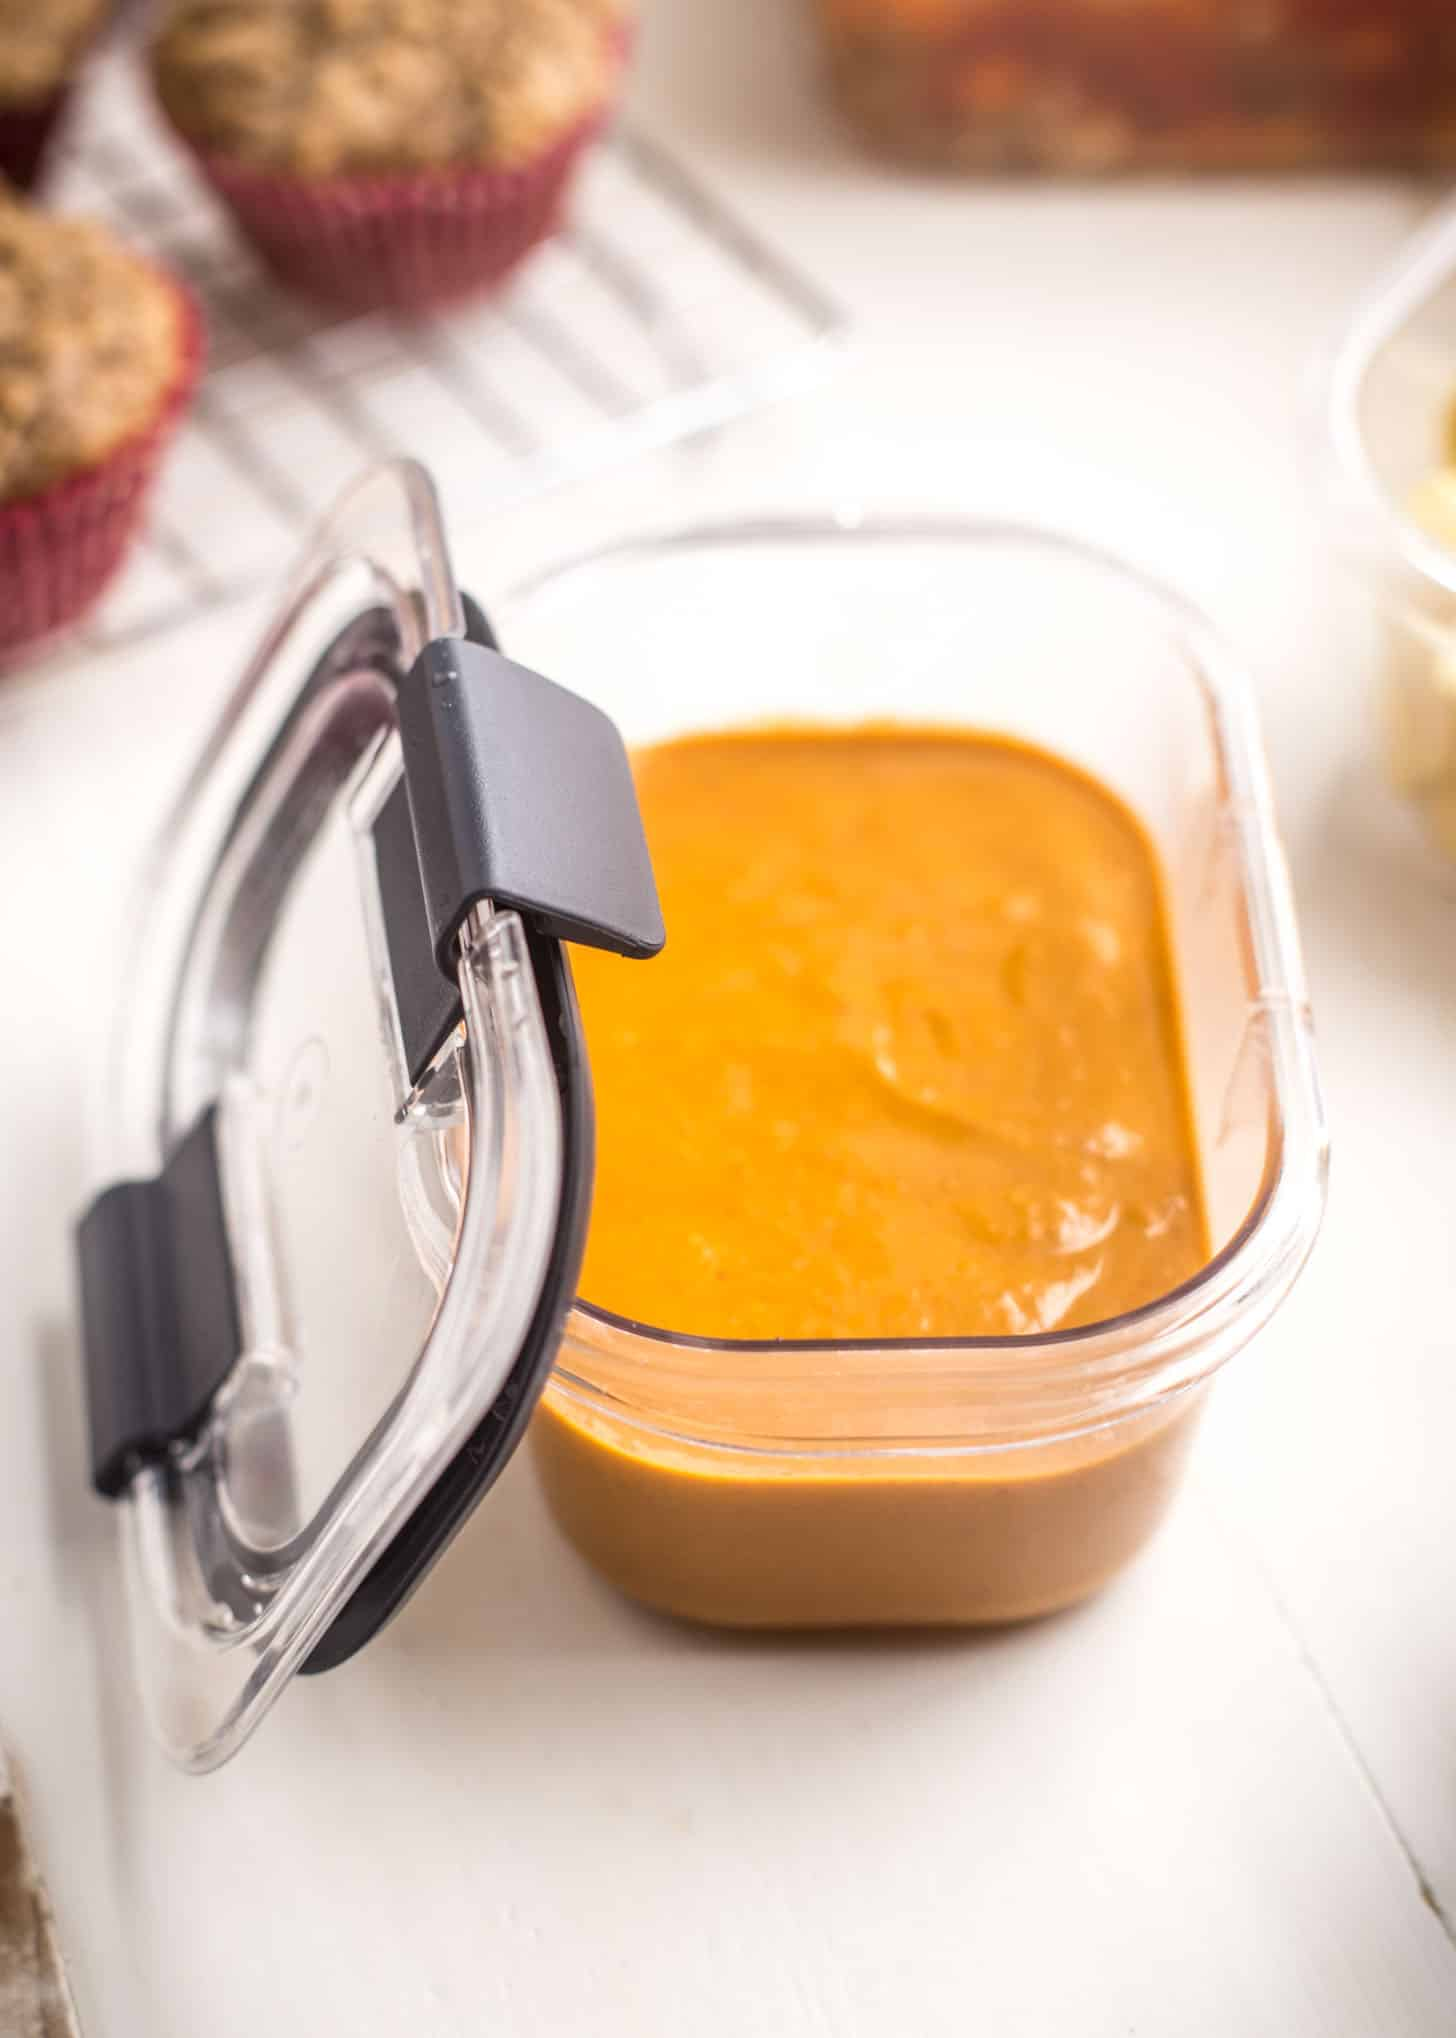 butternut squash soup in a plastic container